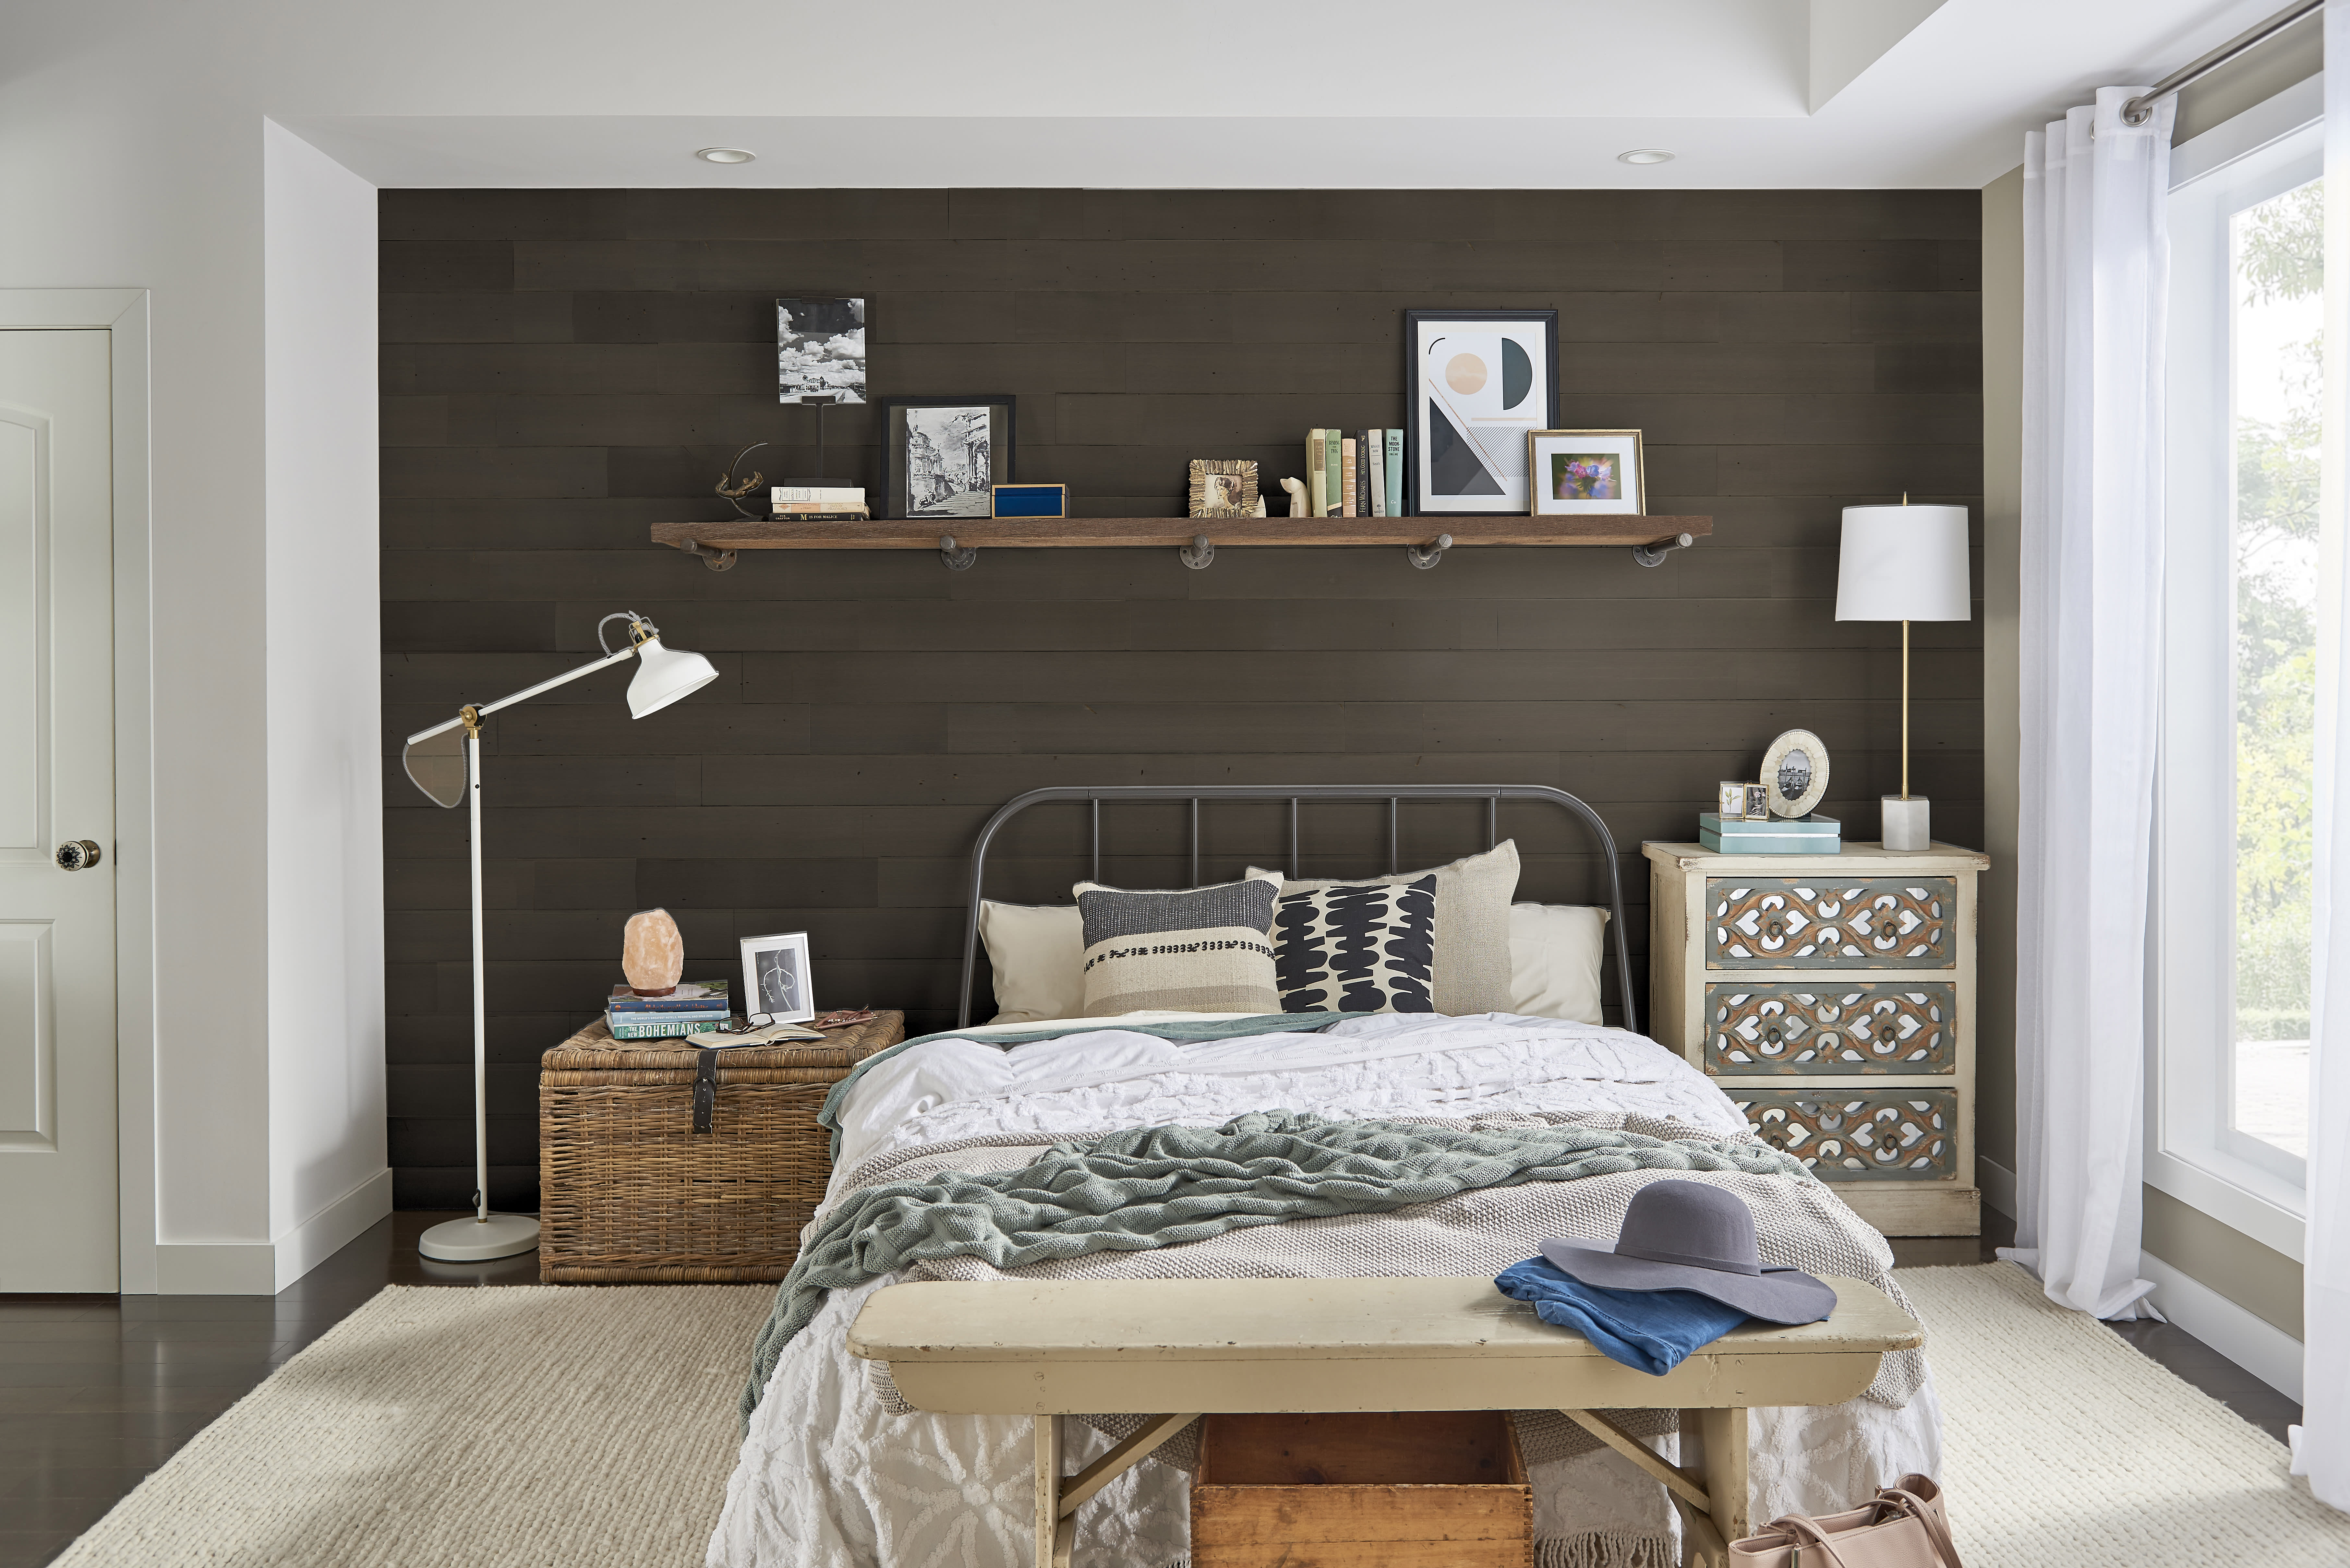 Comfortable bedroom with a dark reclaimed accent wall made from Stikwood peel and stick real wood wall and ceiling planks.